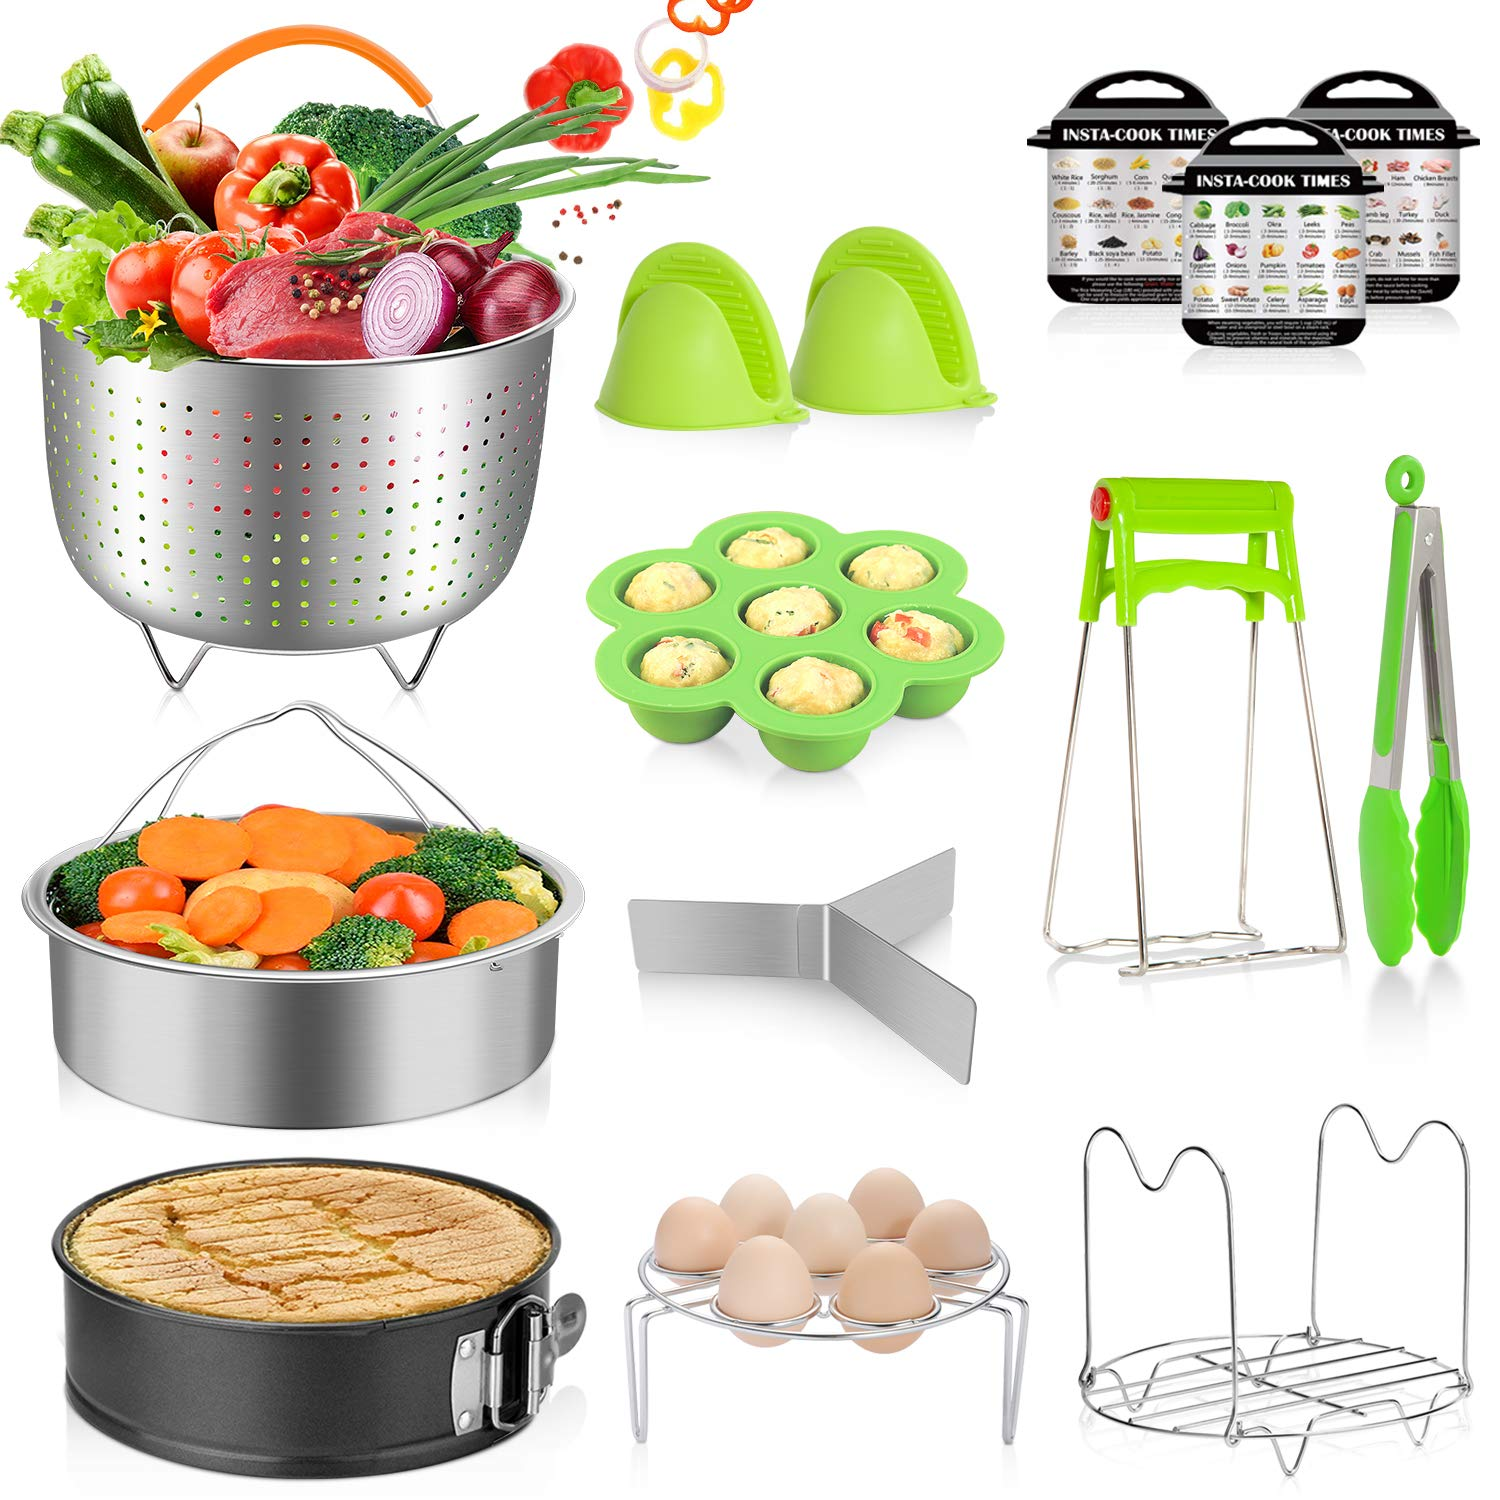 MIBOTE 14pcs Pressure Cooker Accessories Set fits Instant Pot 5,6,8 Qt, Steamer Baskets, Springform Pan, Egg Steamer Rack, Egg Bites Mold, Kitchen Tong, Silicone Pad, Oven Mitts, Cheat Sheet Magnet by MIBOTE